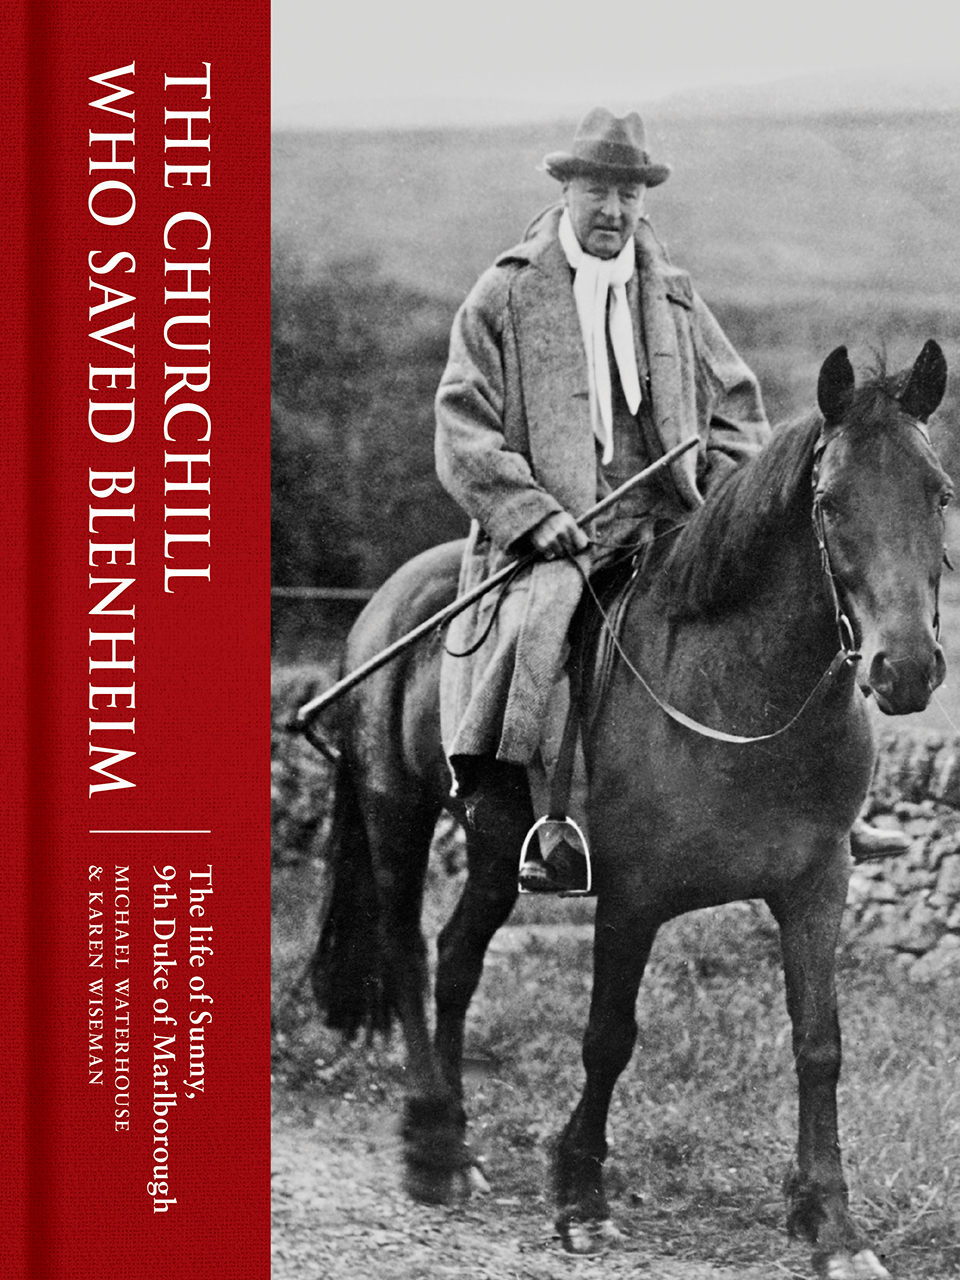 The Churchill Who Saved Blenheim: The Life of Sunny, 9th Duke of Marlborough